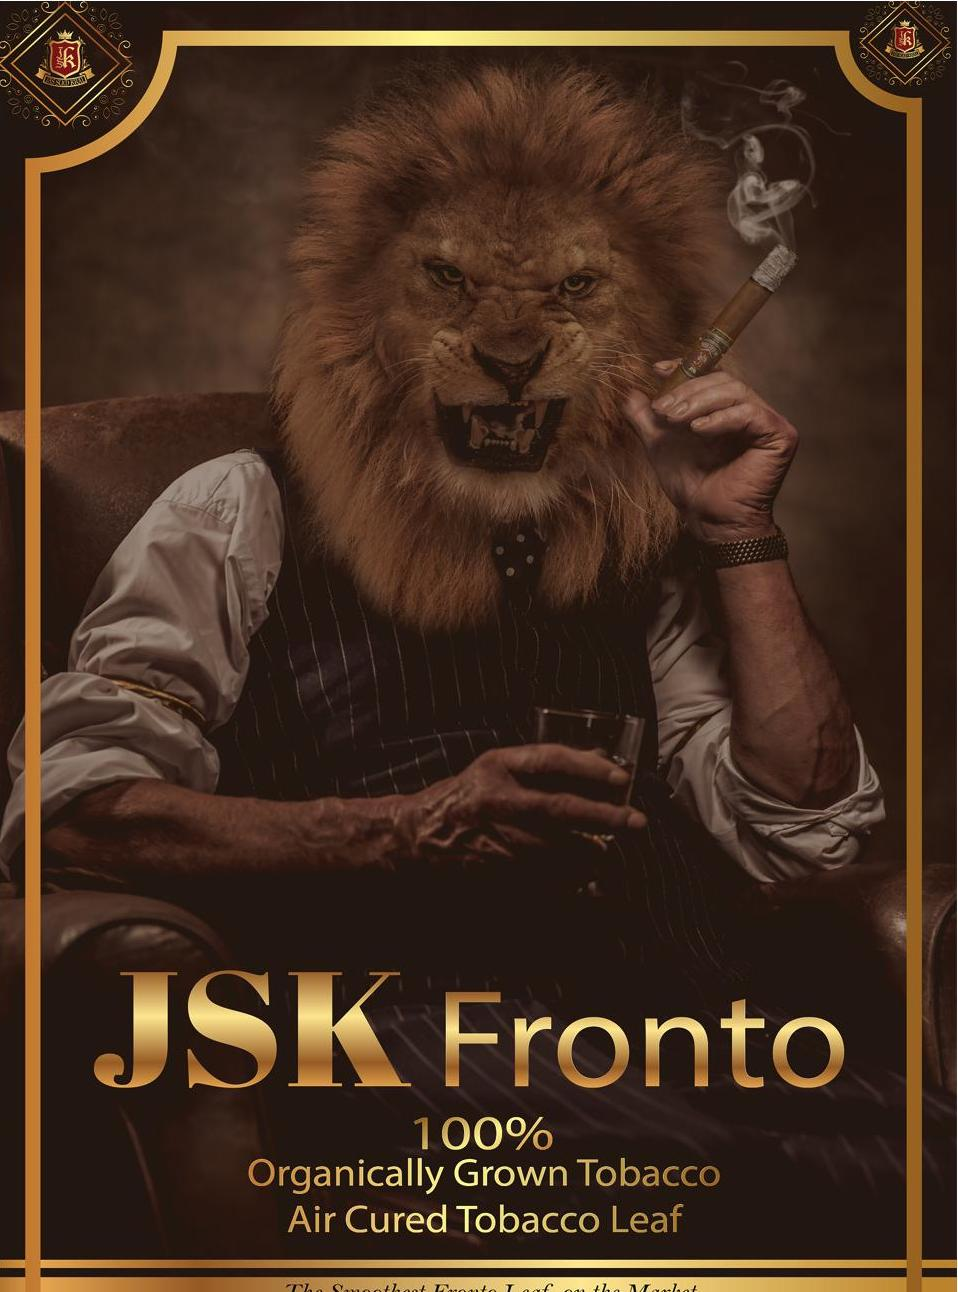 News: JSK Fronto to be Introduced at TPE 2020